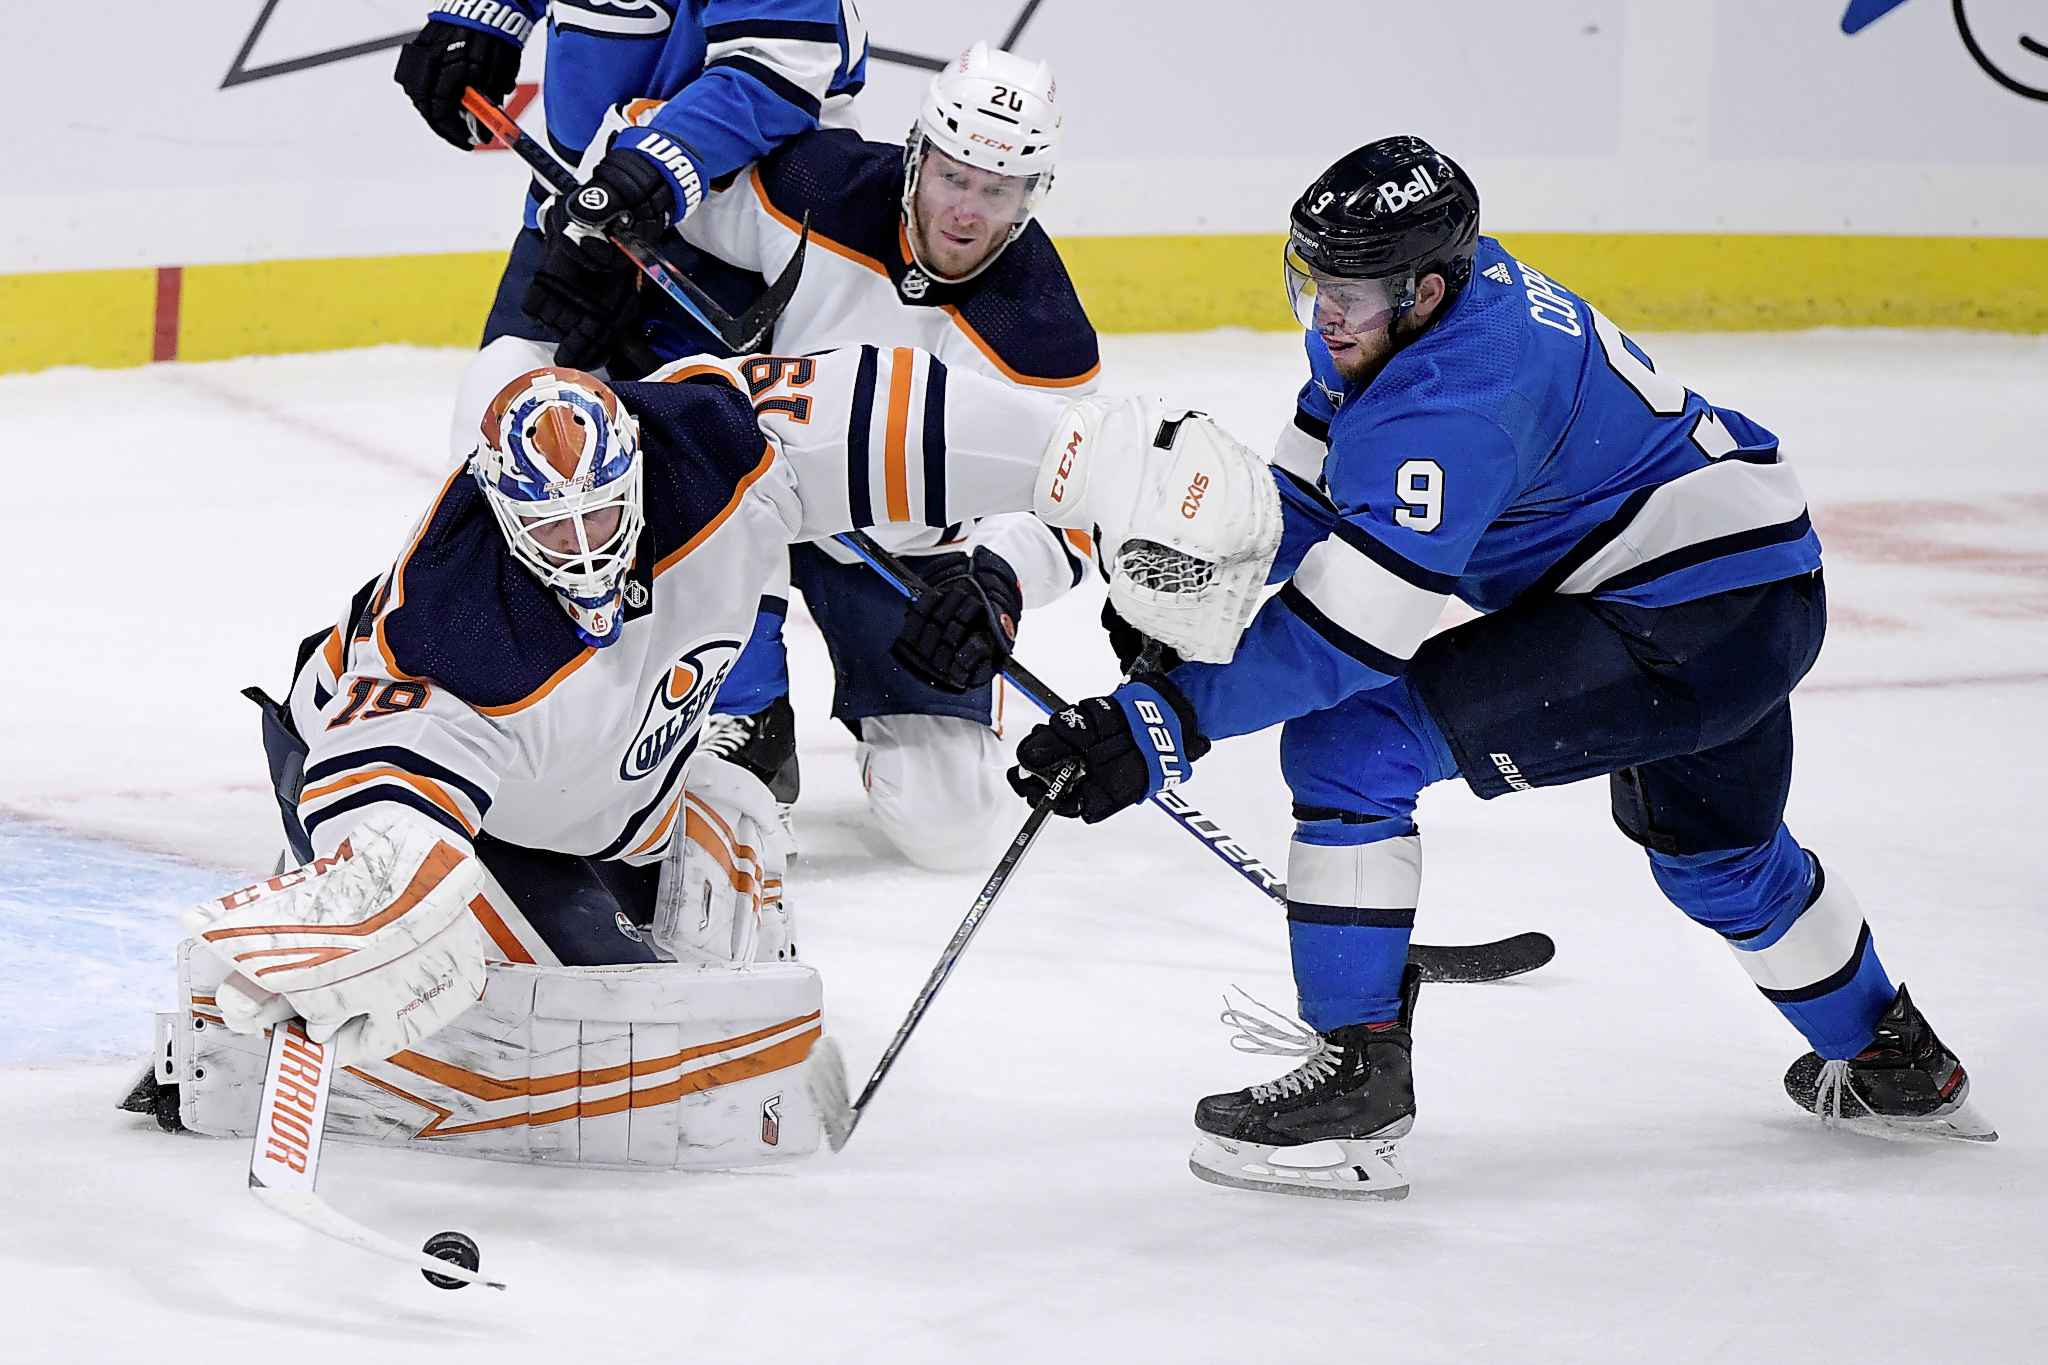 Edmonton Oilers goaltender Mikko Koskinen (19) makes a save on Winnipeg Jets' Andrew Copp (9) during the first period. (Fred Greenslade / The Canadian Press)